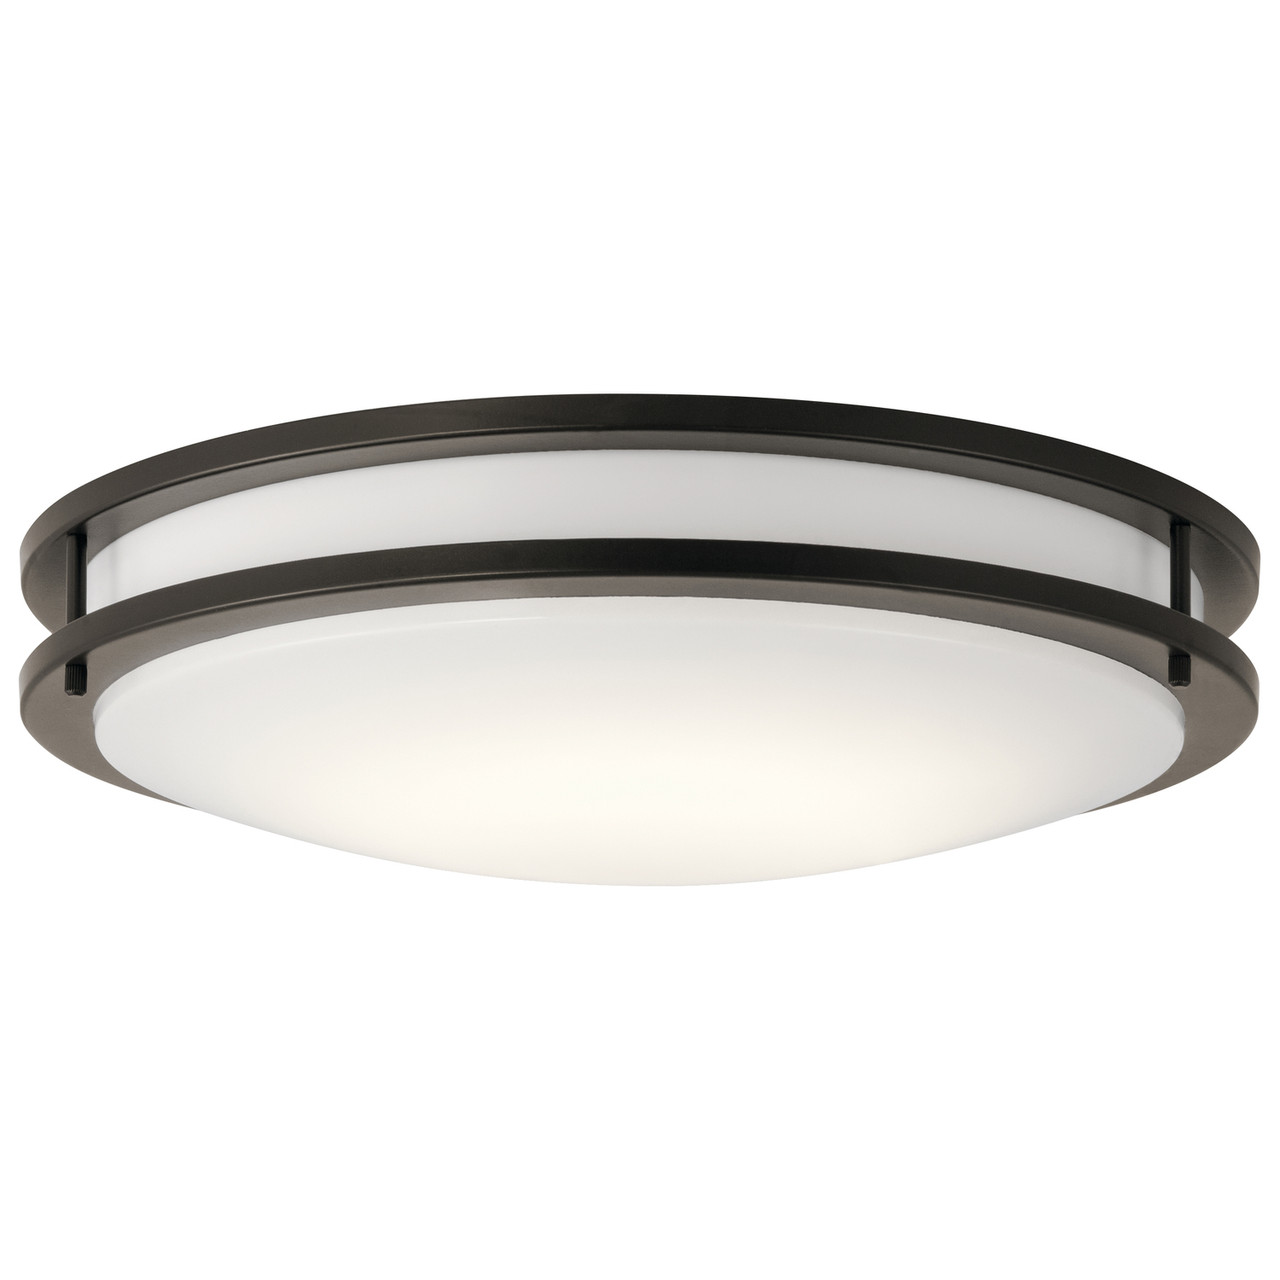 Kichler Flush Mount LED Decorative Light, Olde Bronze, White Diffuser, Wall or Ceiling Mount, 1790 Lumens, Dimmable, 120V, 34W, 3000K (10786OZLED)